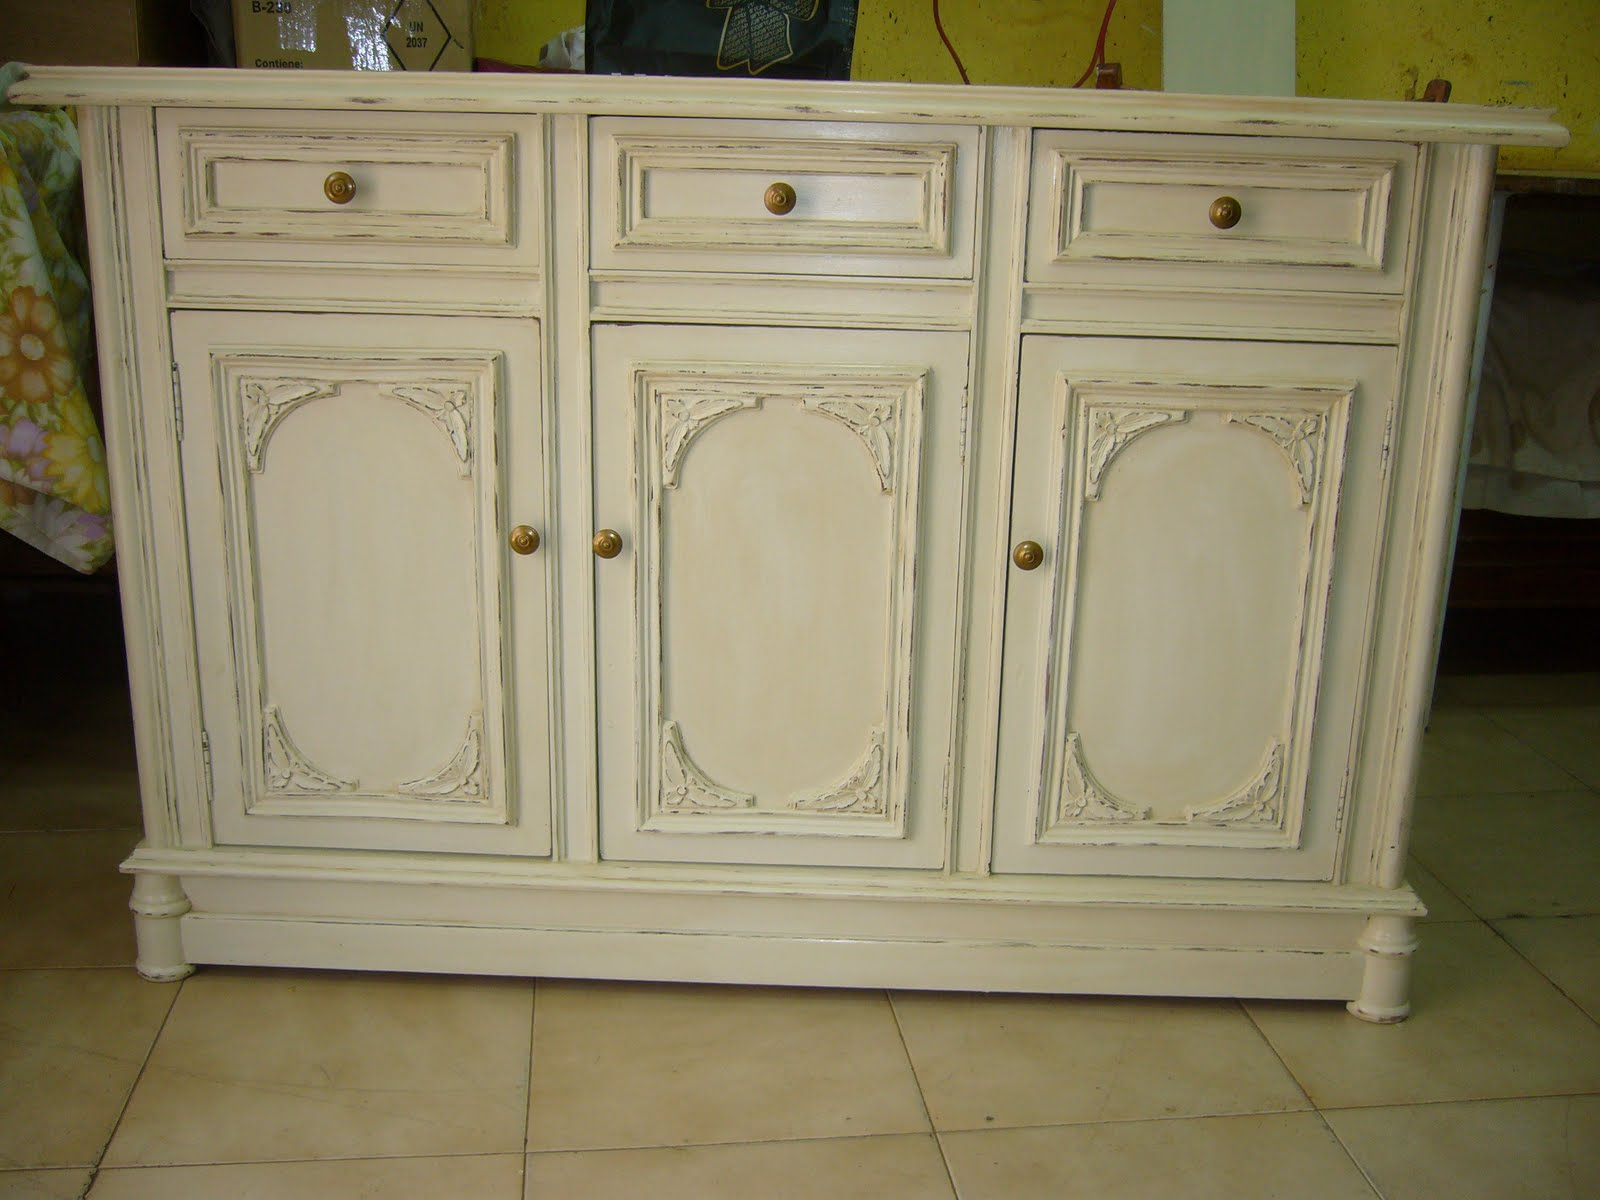 Pintar Mueble Antiguo Good Ideas De Negocios With Como Pintar Un  # Muebles Patinados En Blanco